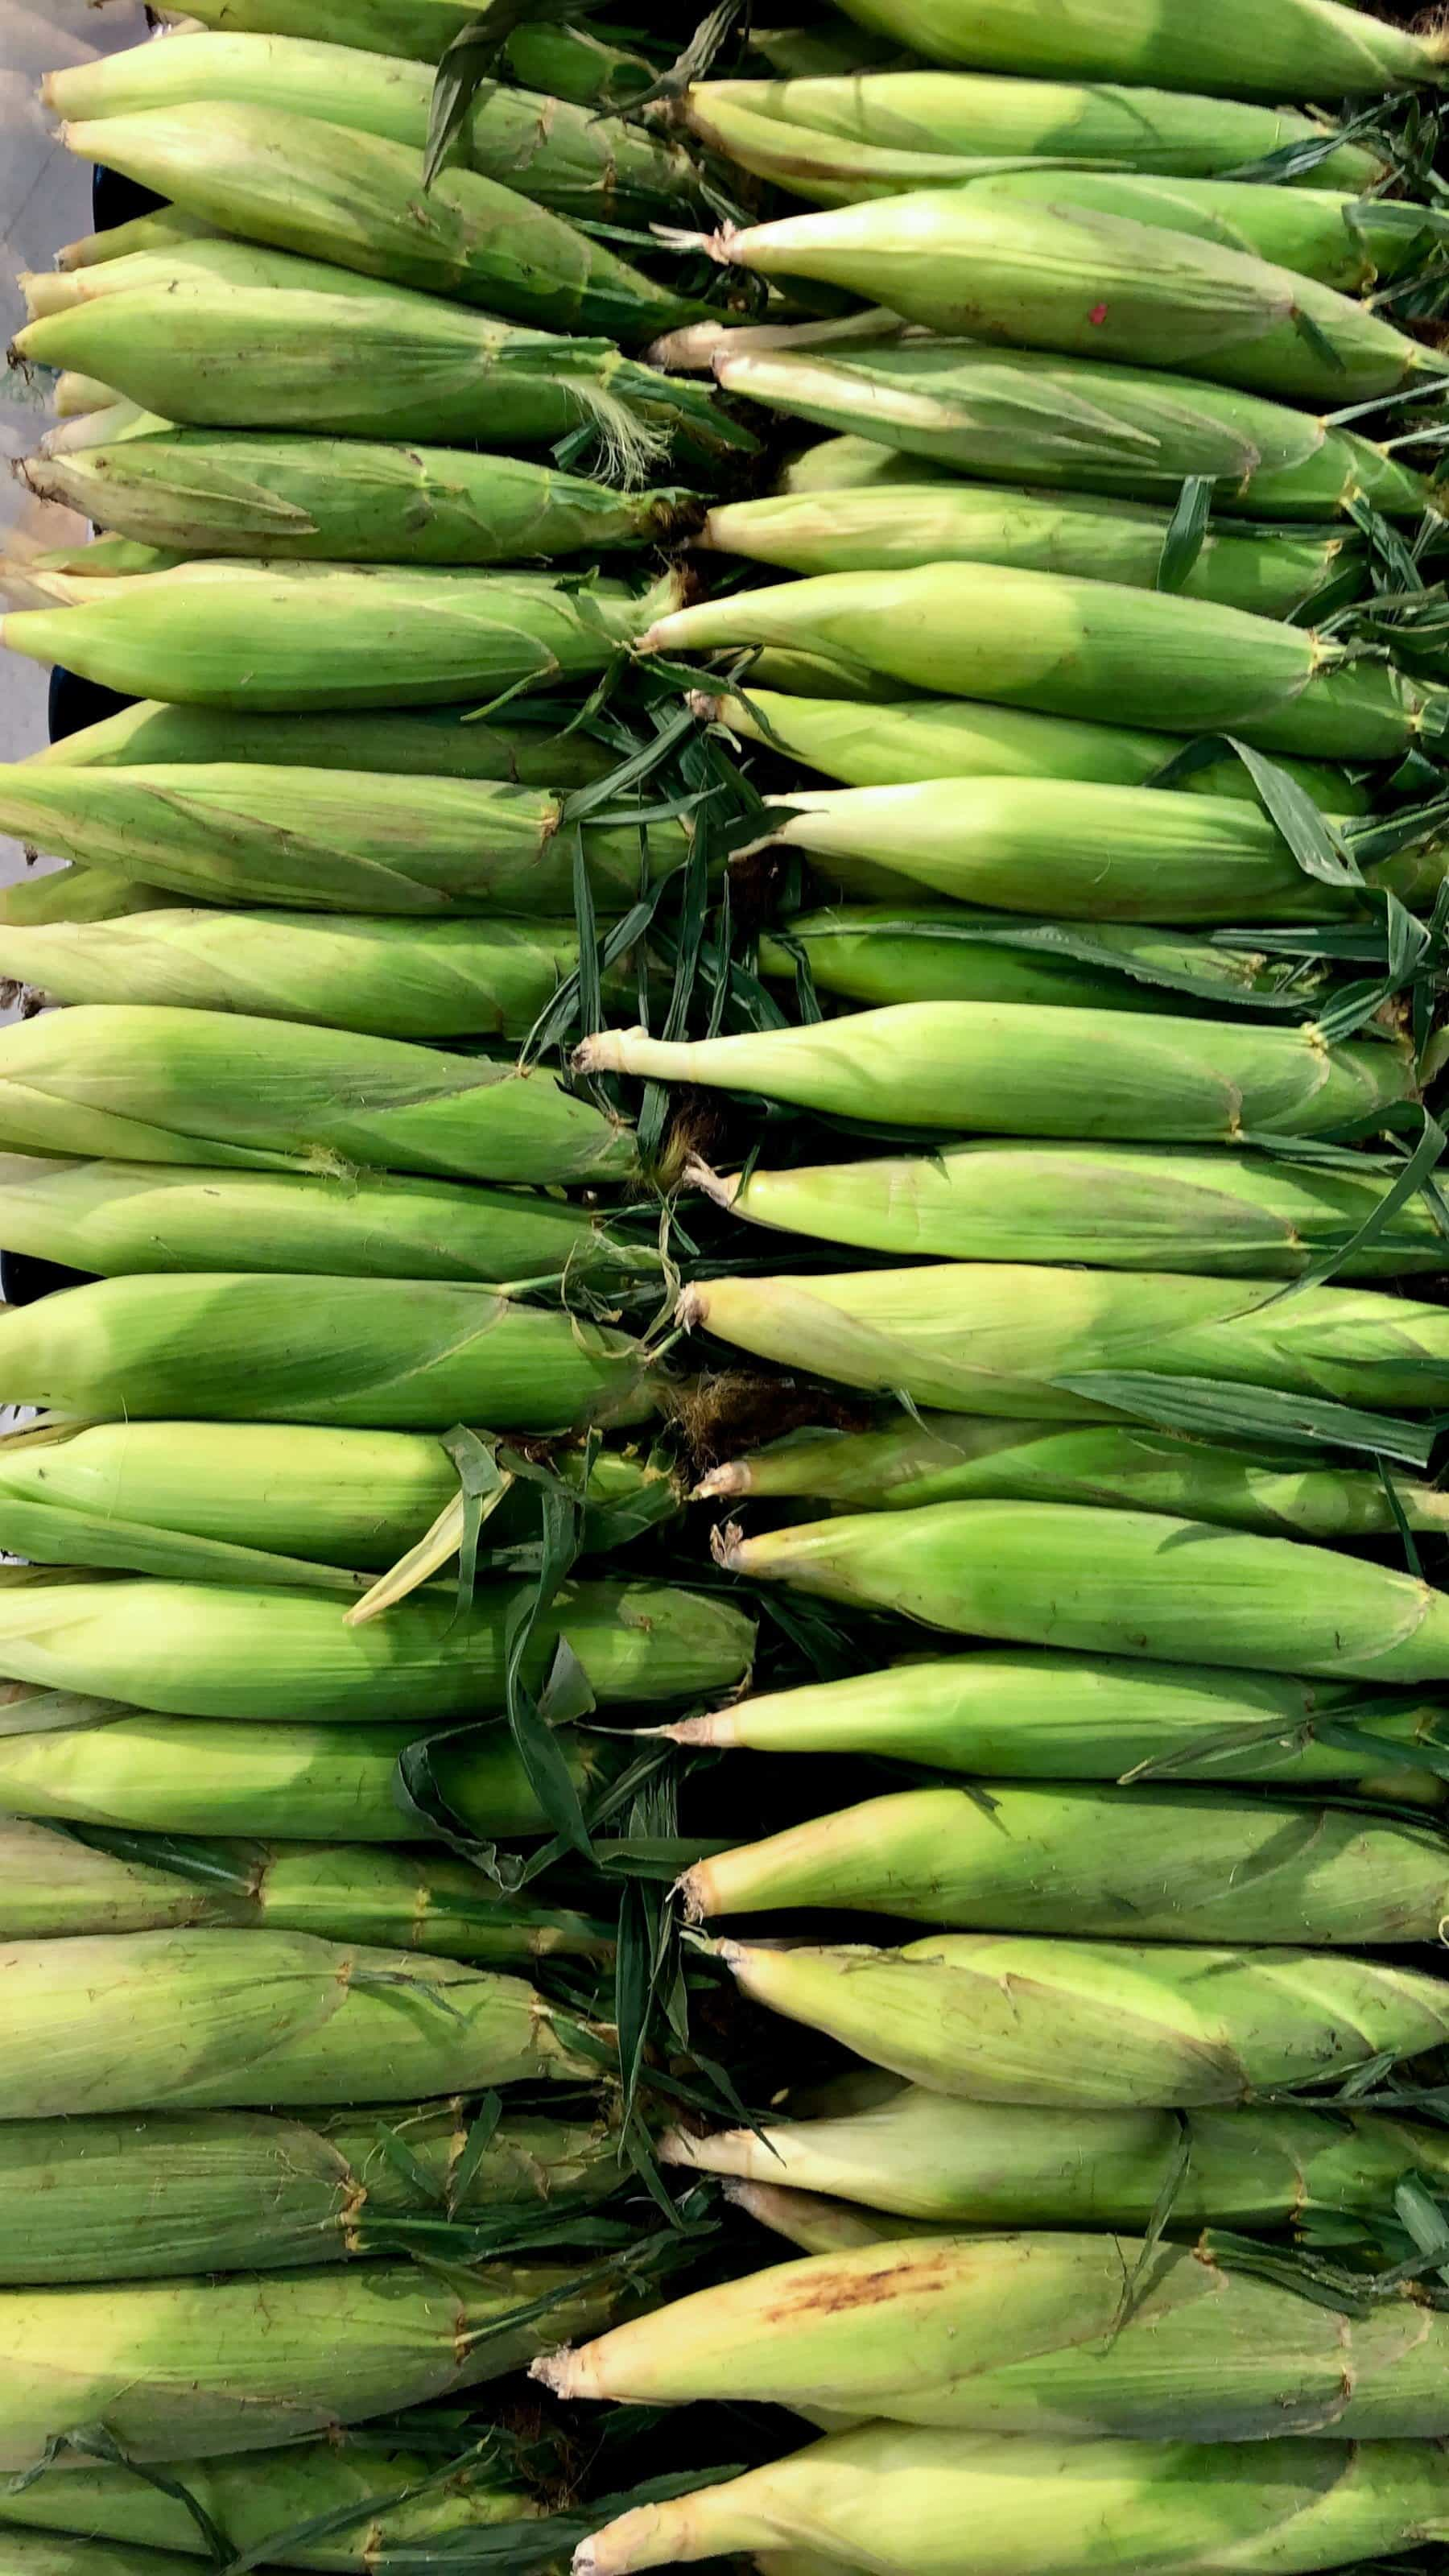 Ears of corn lined up for purchase